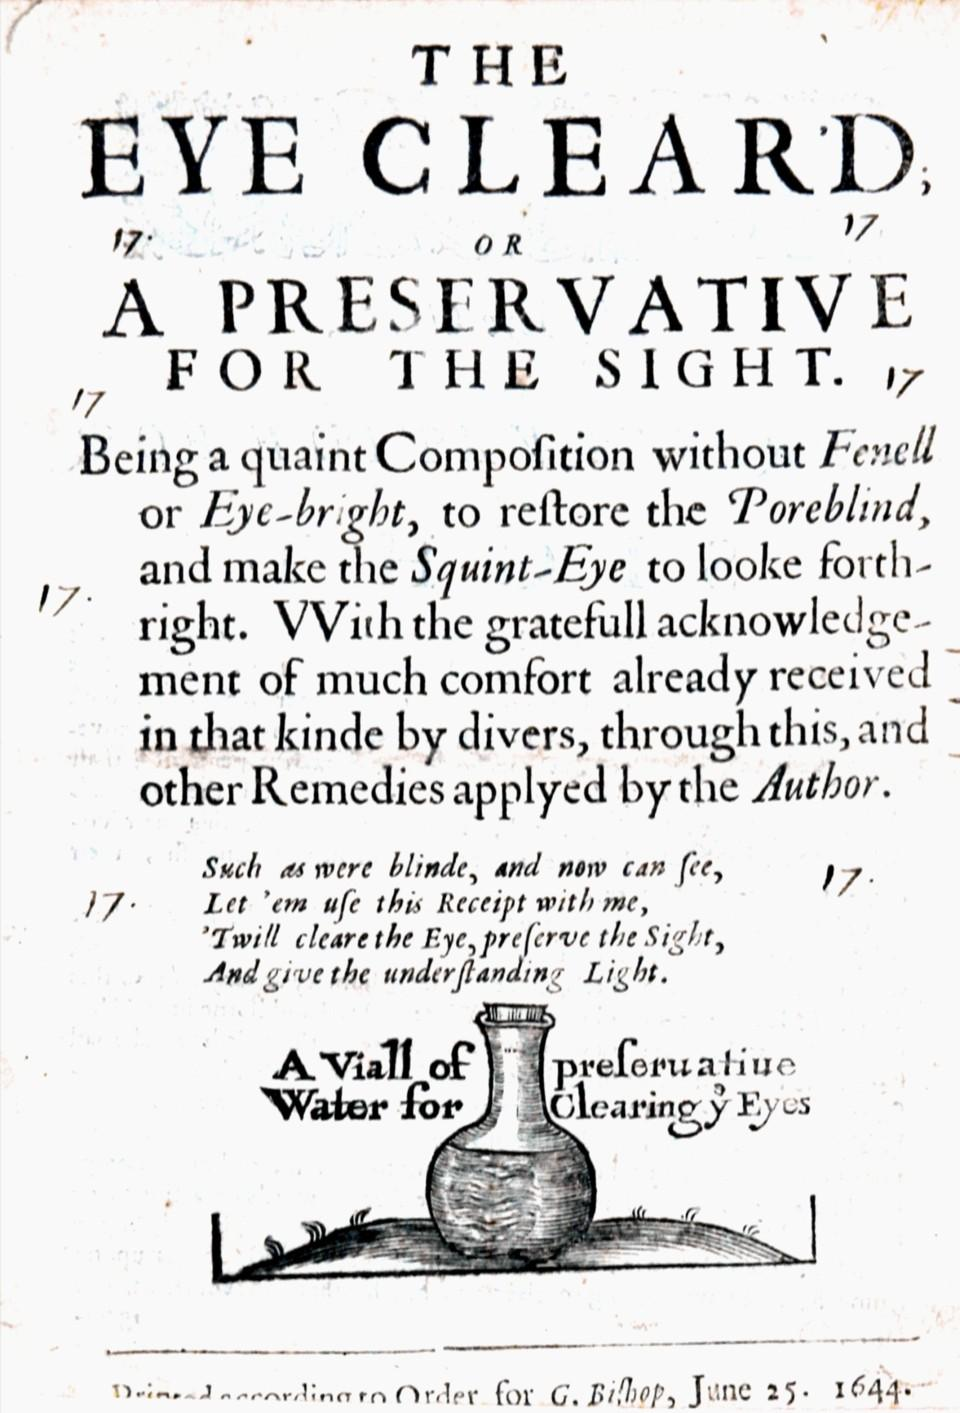 The Eye Clear'd; or A Preservative for the Sight. Being a quaint Composition withou Fenell or ...